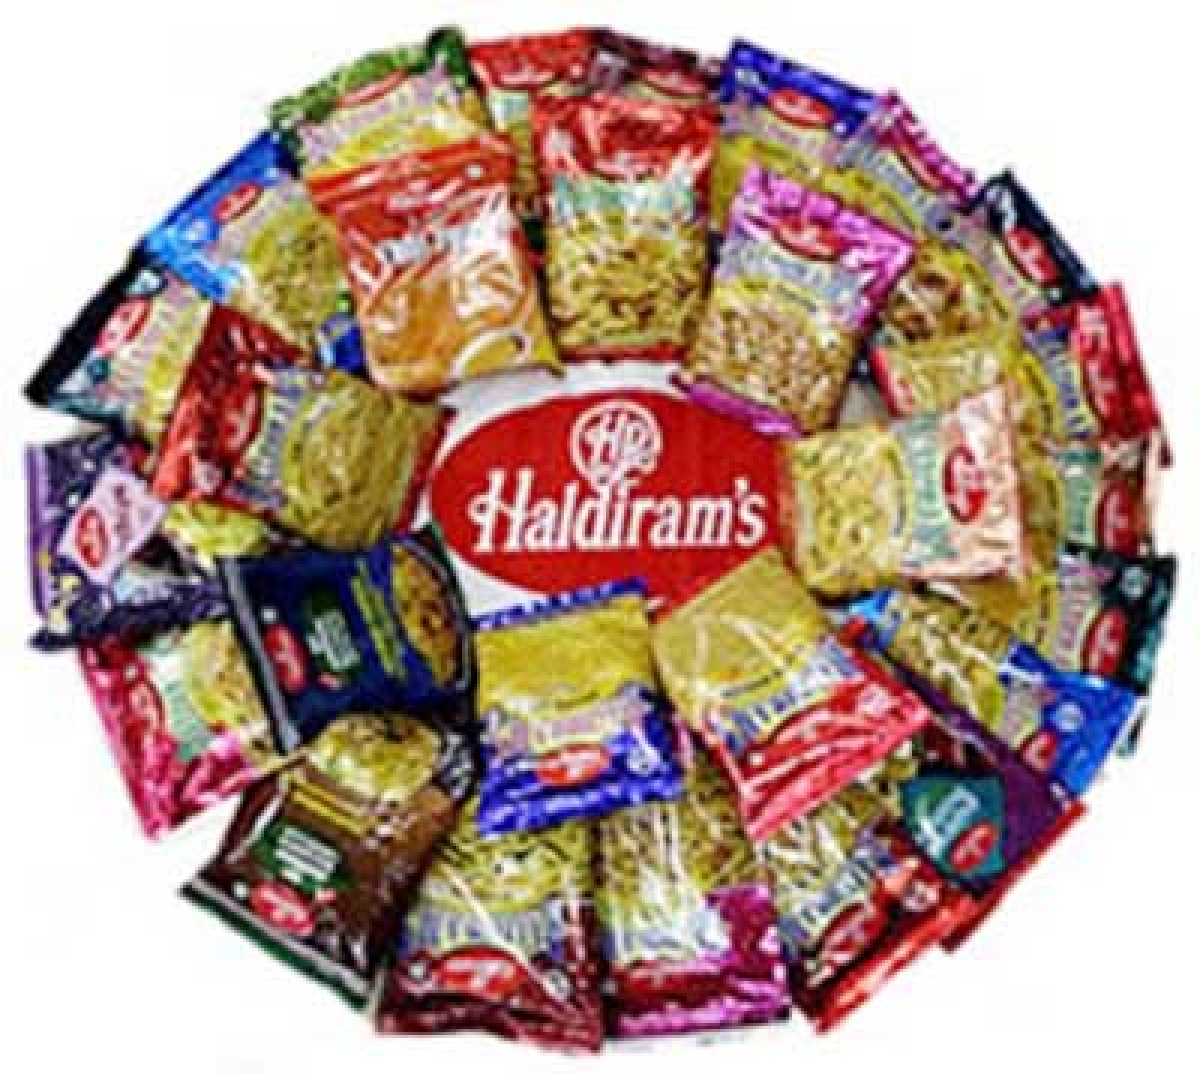 Report on Haldirams to be out in a fortnight